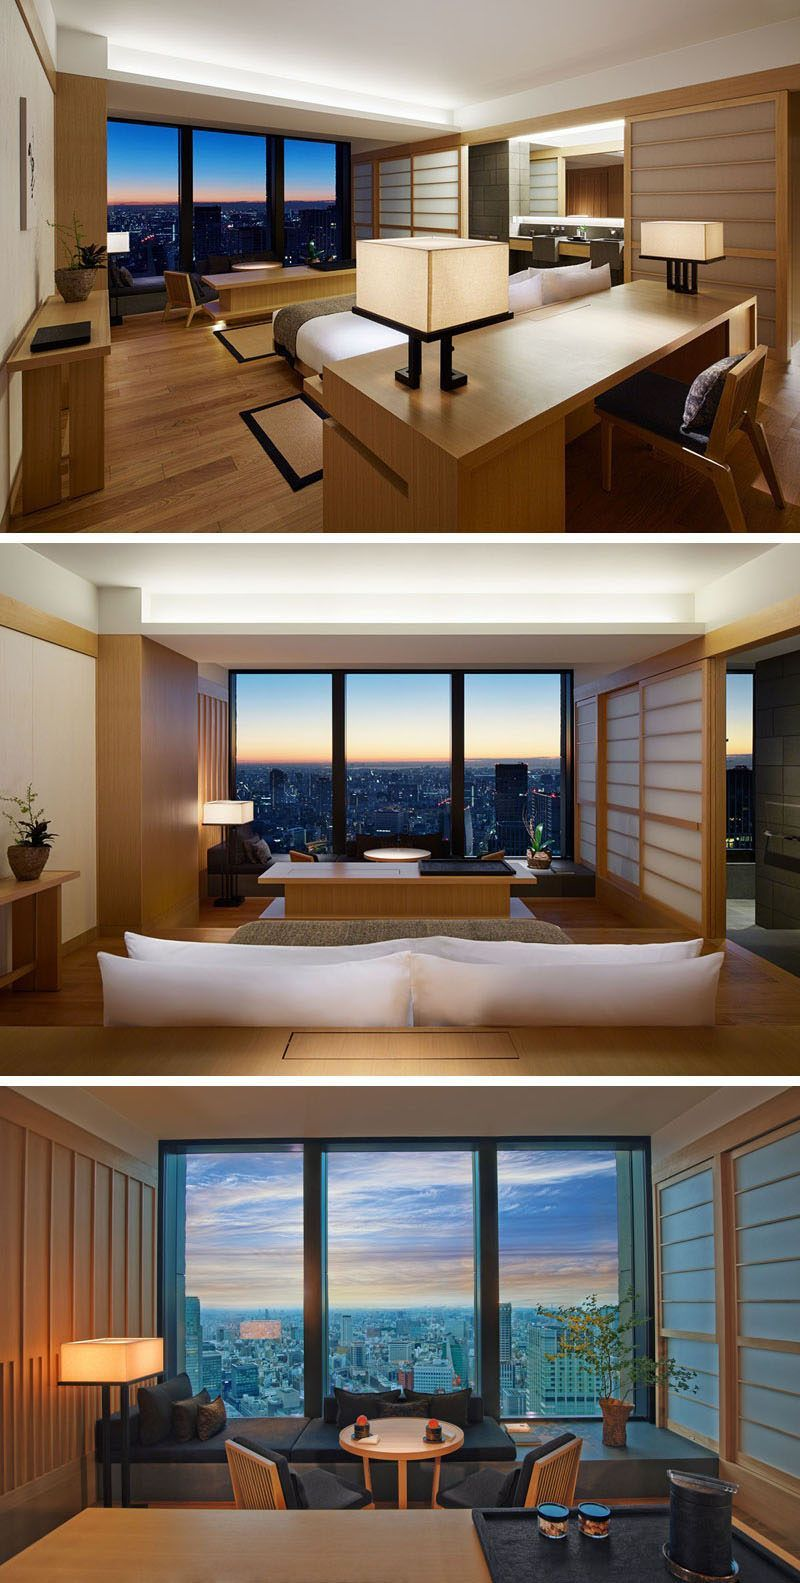 How To Mix Contemporary Interior Design With Elements Of Japanese Culture Contemporist Contemporarydecorrustic Condo Interior Design Japanese Interior Design